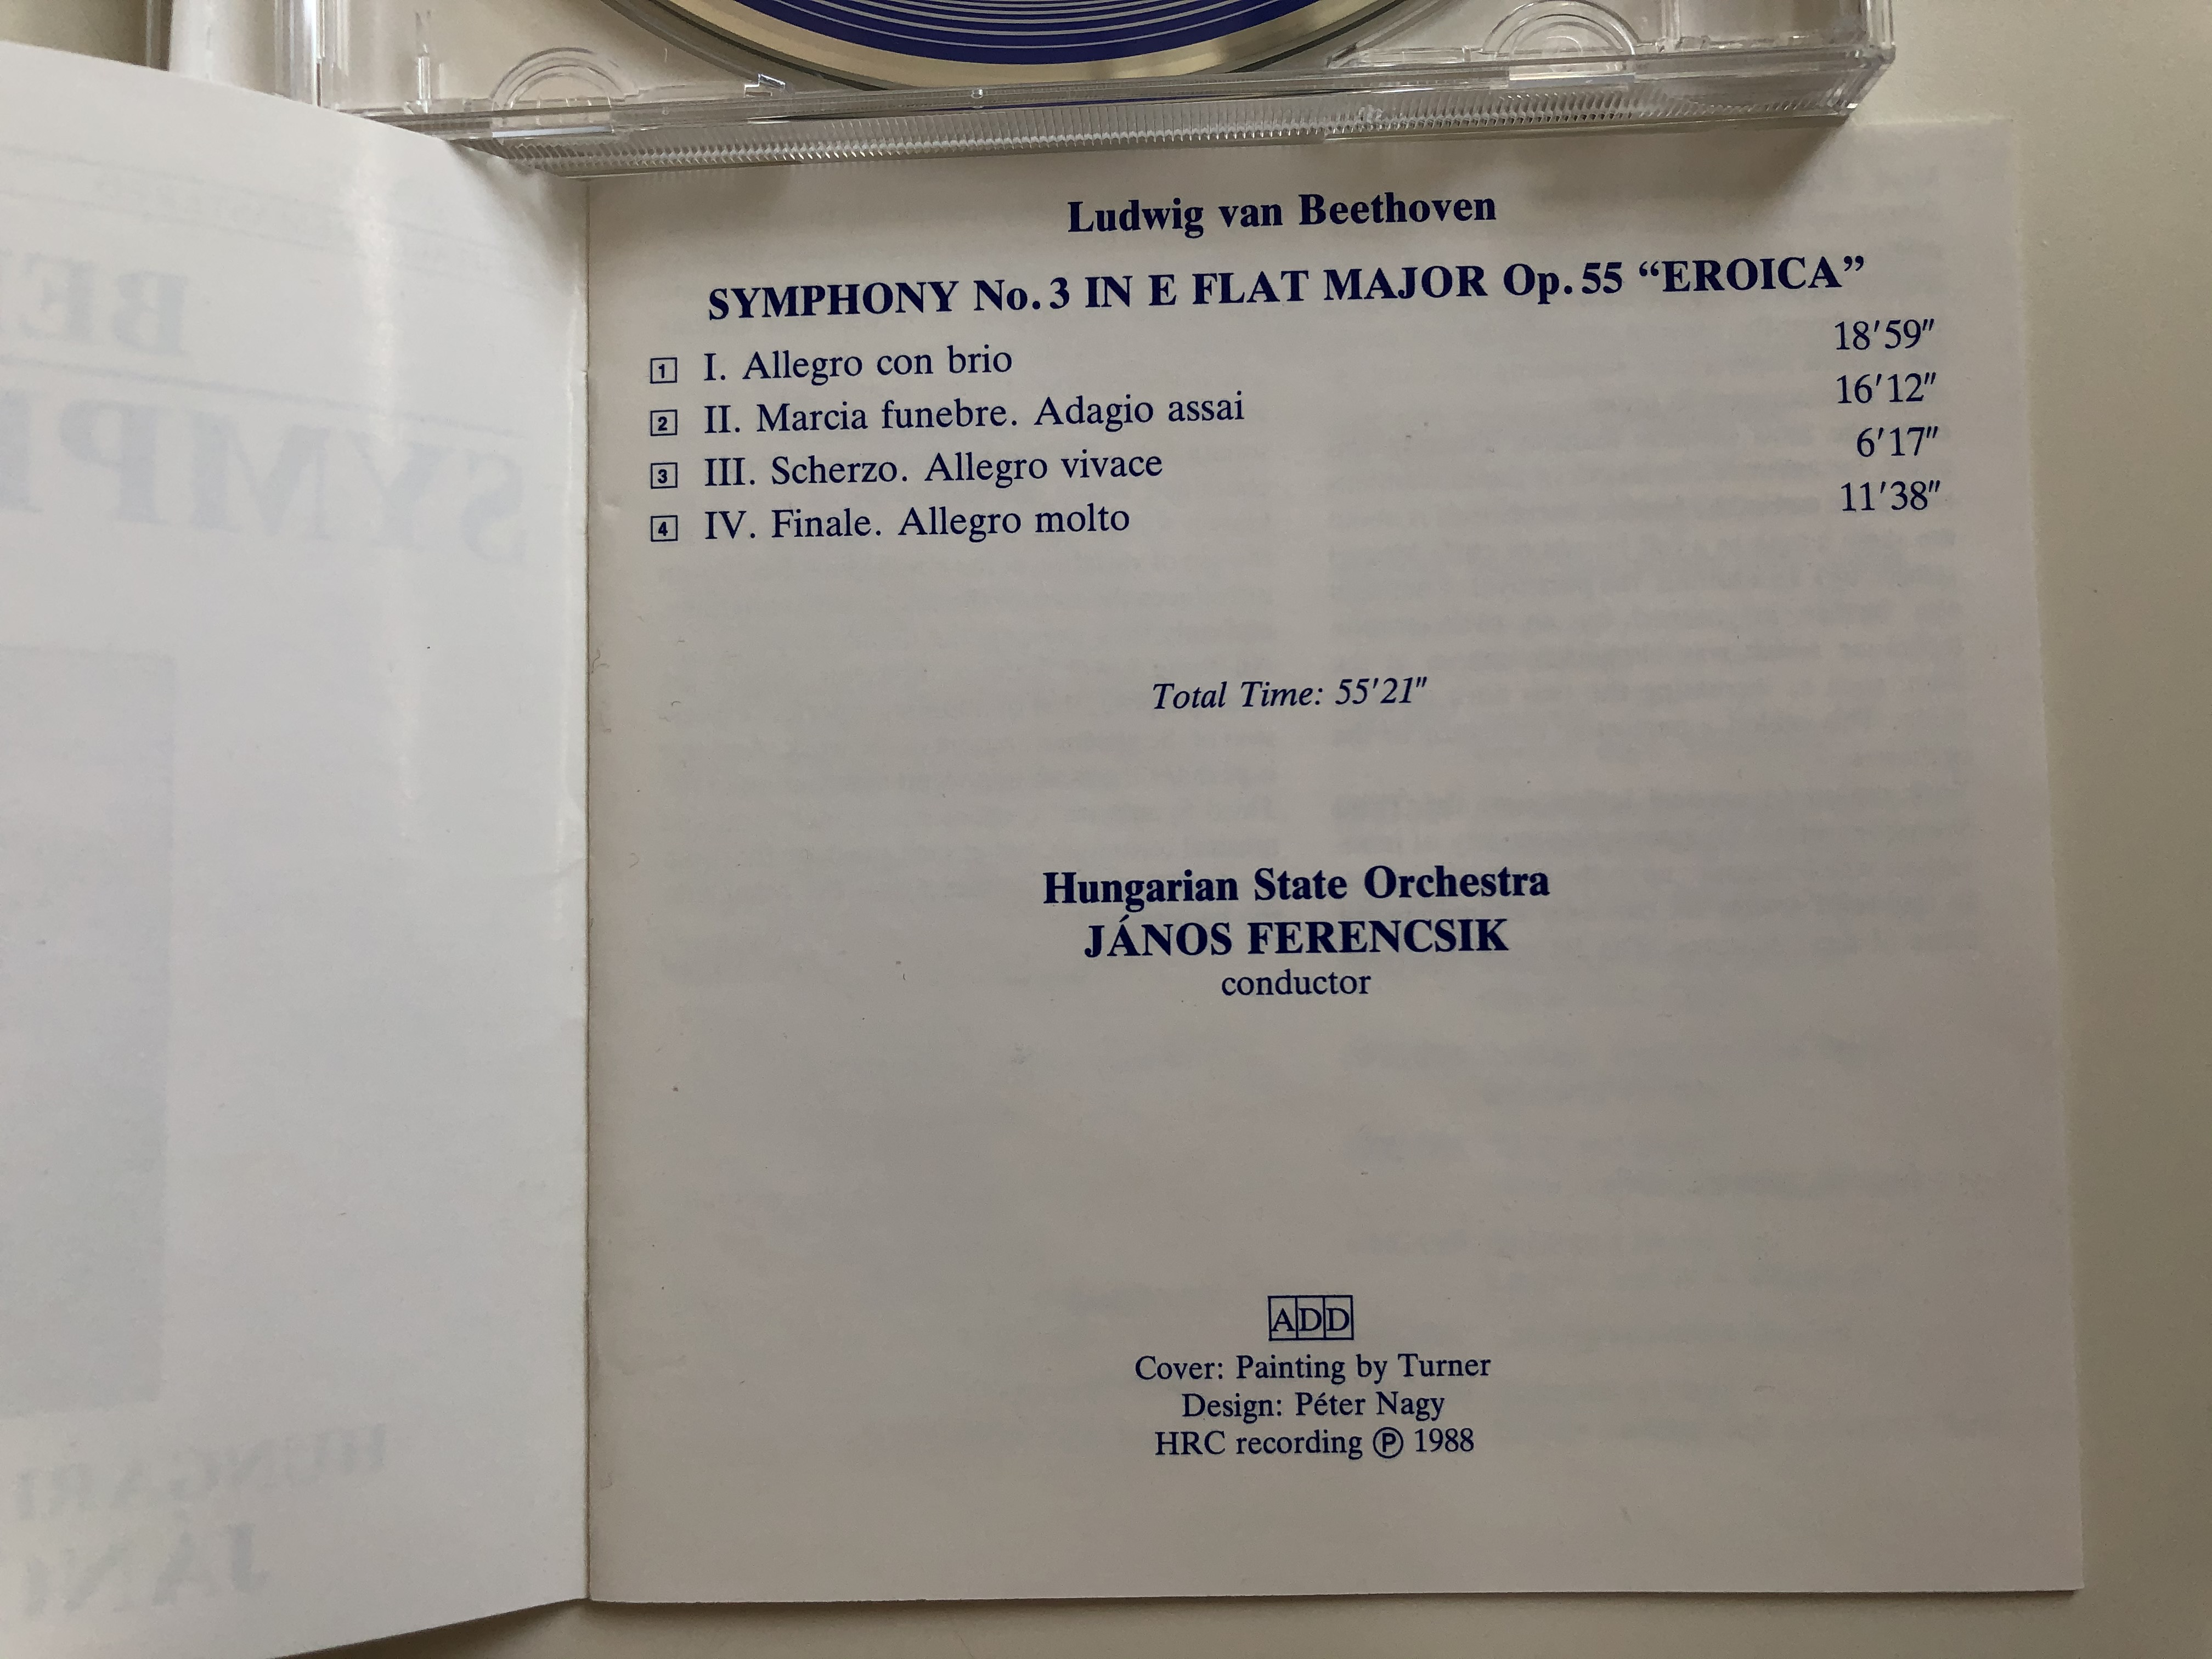 beethoven-symphony-no.-3-eroica-hungarian-state-orchestra-janos-ferencsik-white-label-audio-cd-1988-stereo-hrc-111-2-.jpg